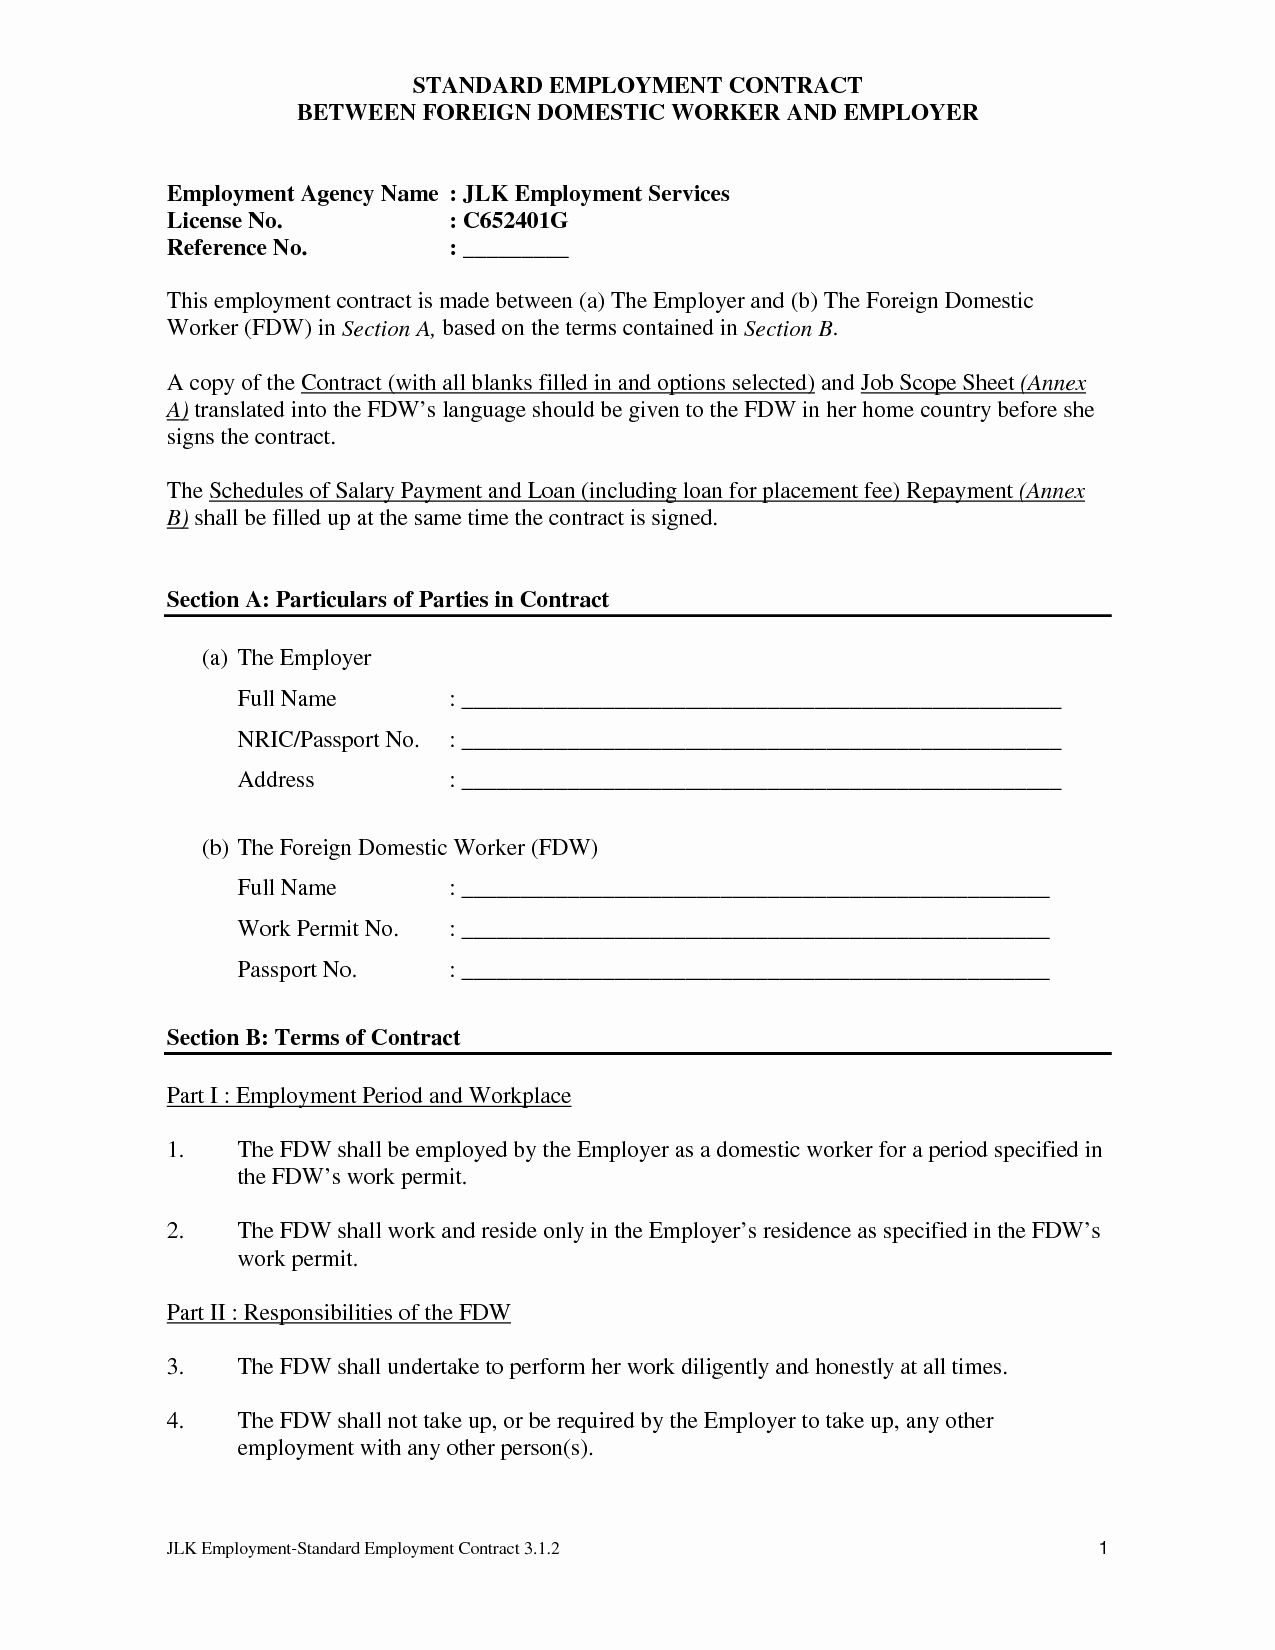 50 Free Employment Contract Template In 2020 Career Portfolio